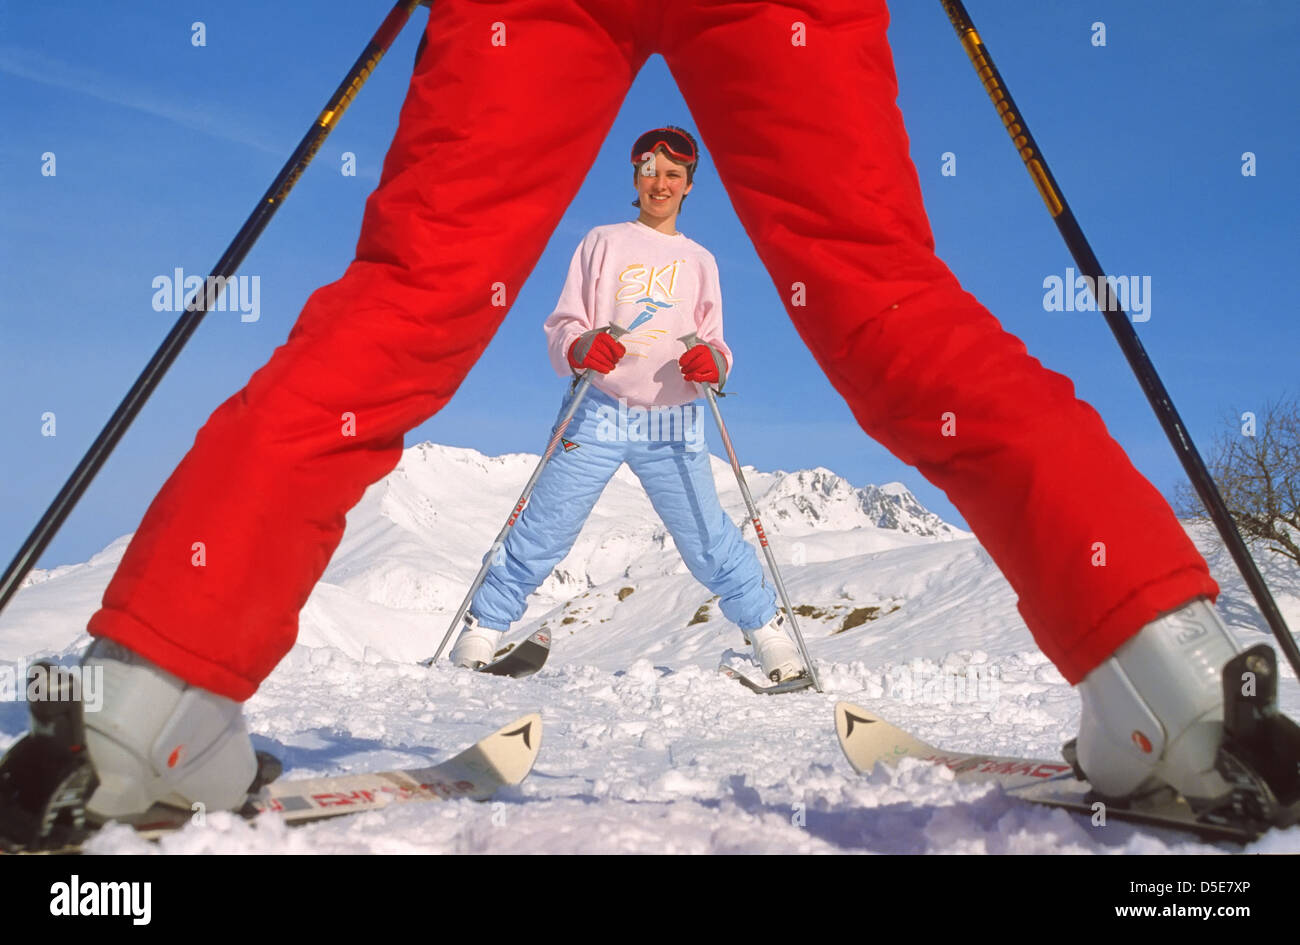 Young skier seen through ski instructor's legs Stock Photo